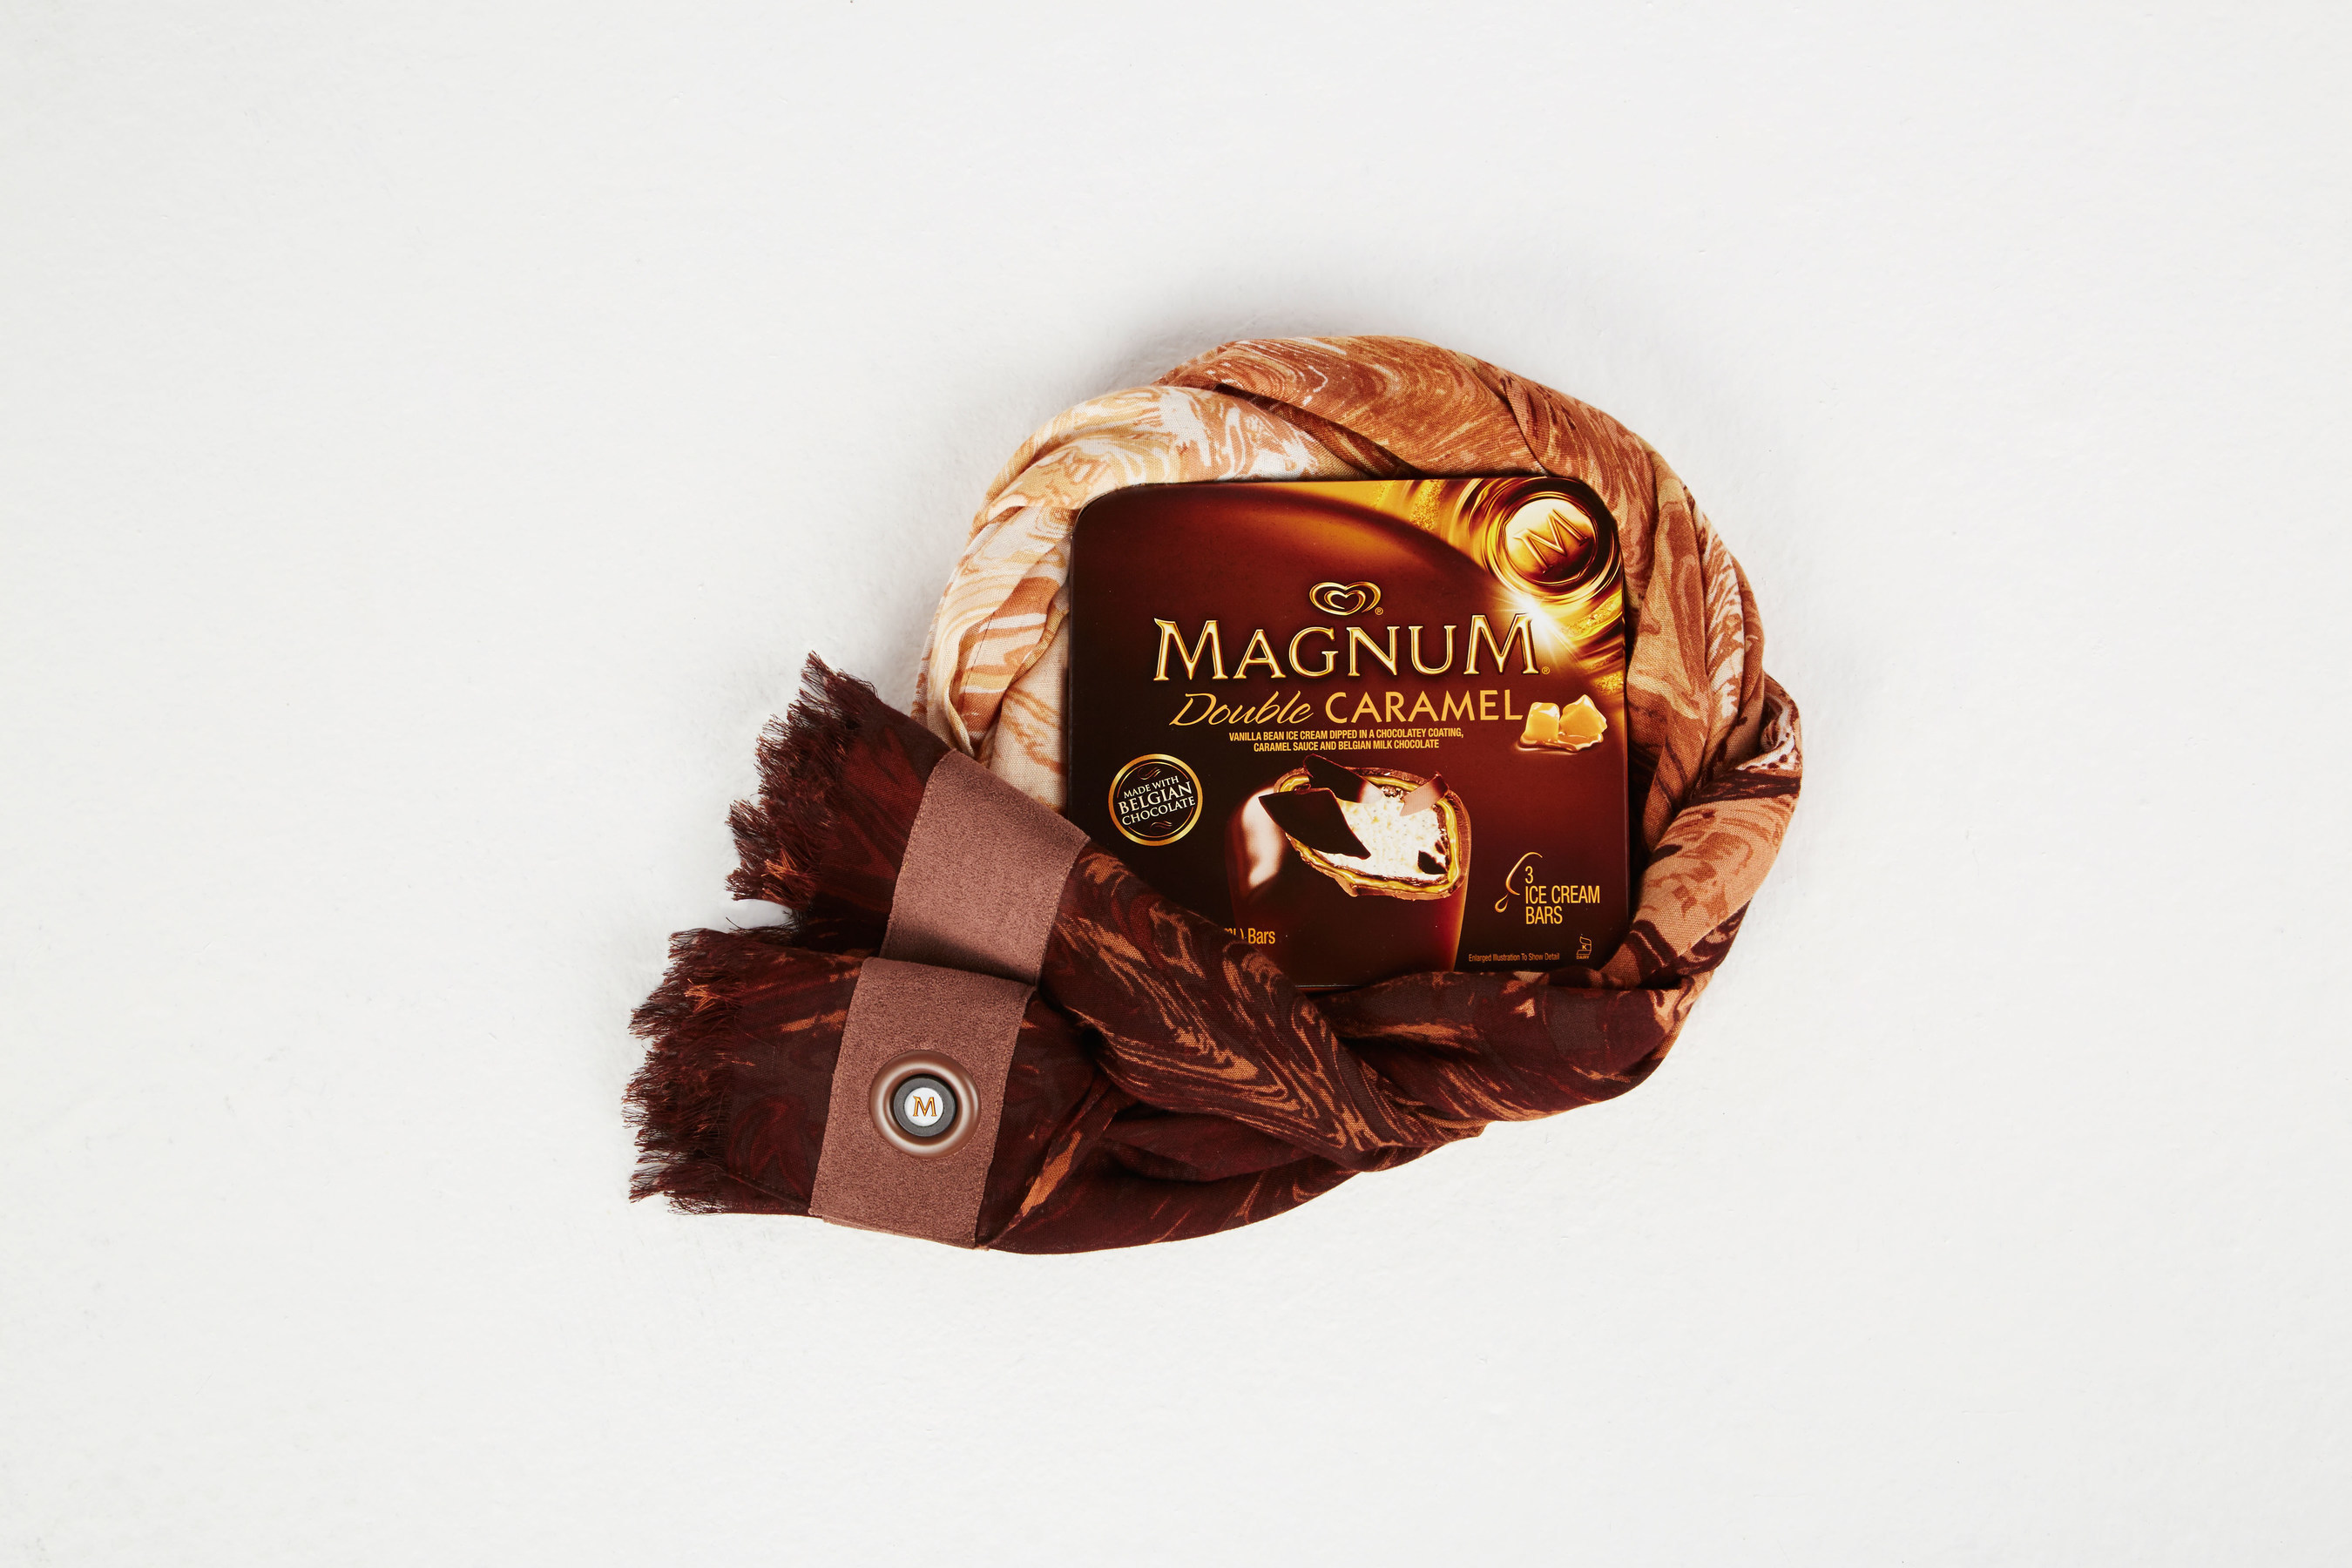 The BCBGMAXAZRIA for MAGNUM Belgian Chocolate Wrap, an innovative accessory infused with an aroma inspired by MAGNUM Belgian Chocolate. The wrap will be available as a limited edition 'gift with purchase' in select BCBGMAXAZRIA stores nationwide this summer.